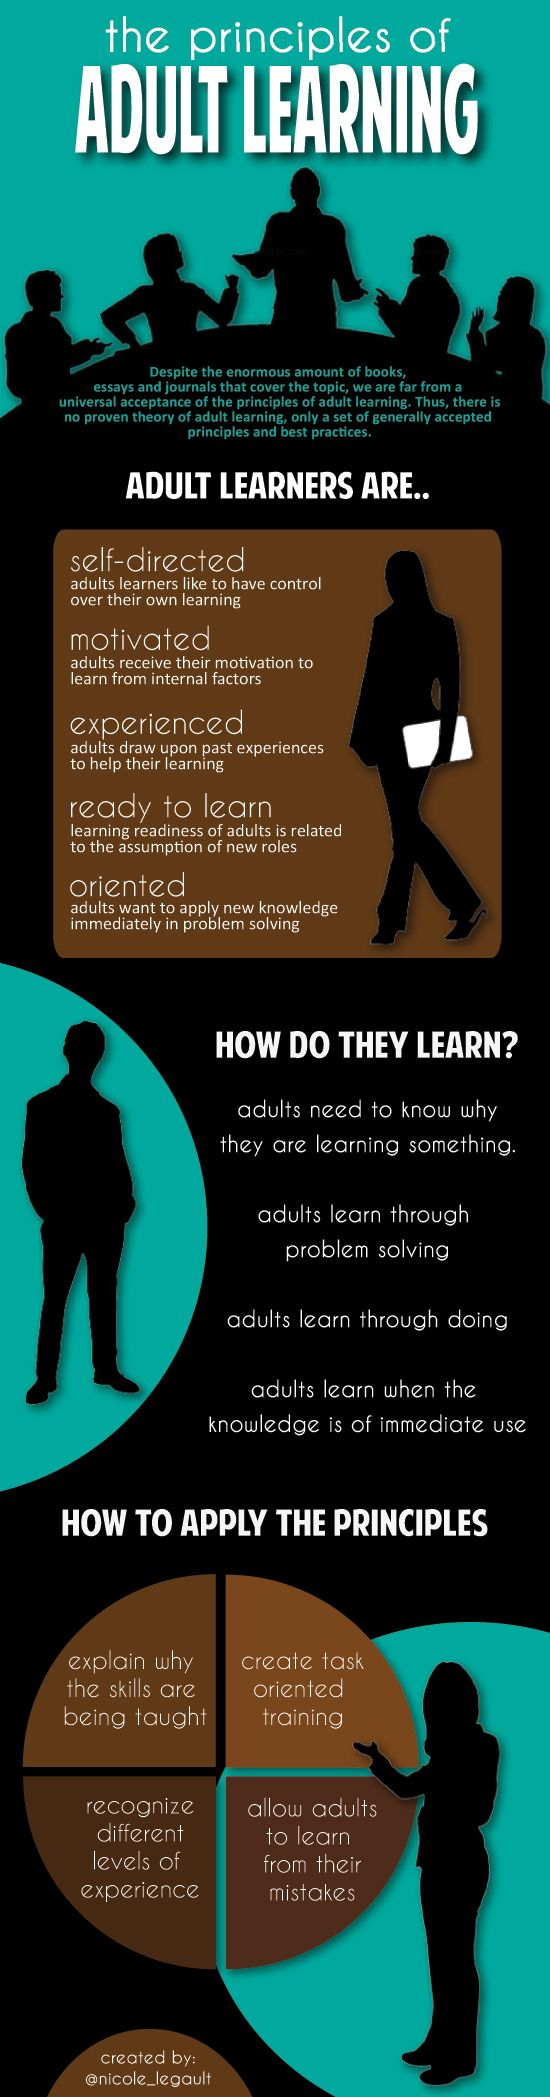 infographic an overview of the principles of adult learning a simple infographic providing an overview of the principles of adult learning by nicole legault